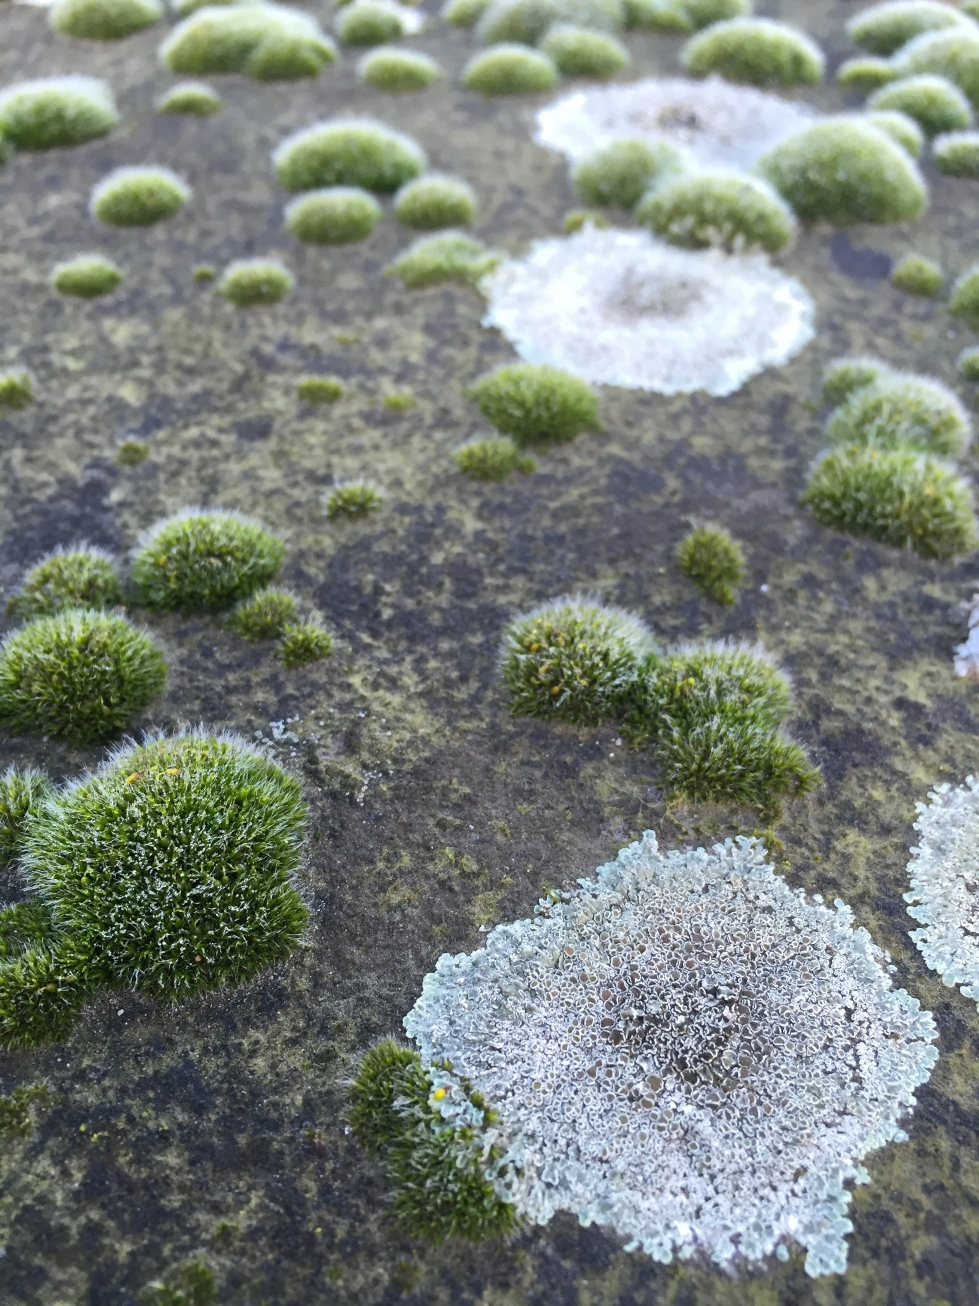 Mosses and lichens, Acton, February 2016